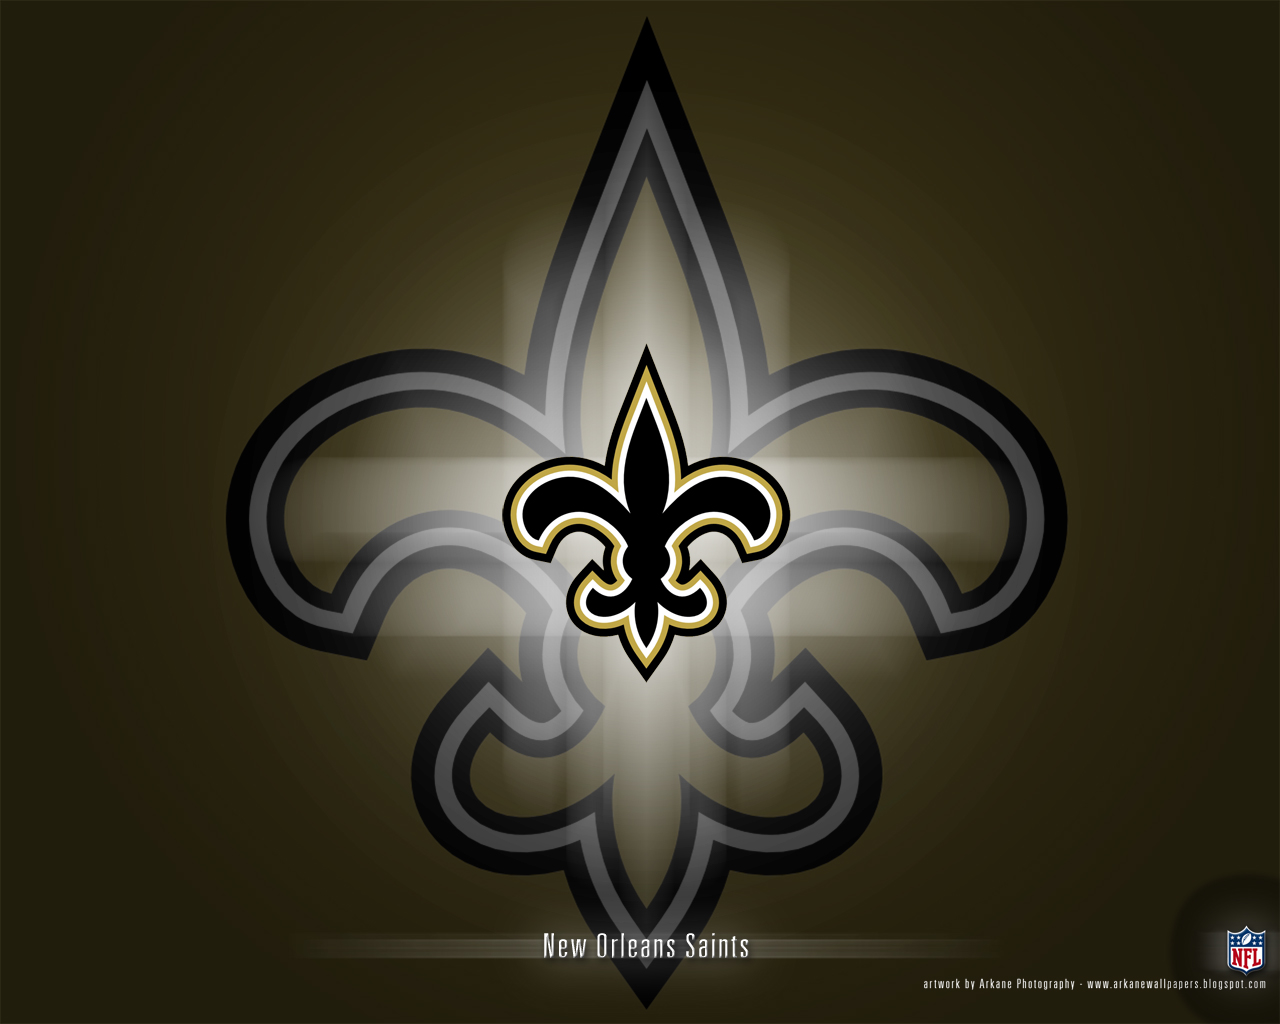 Arkane Nfl Wallpapers New Orleans Saints Vol 1